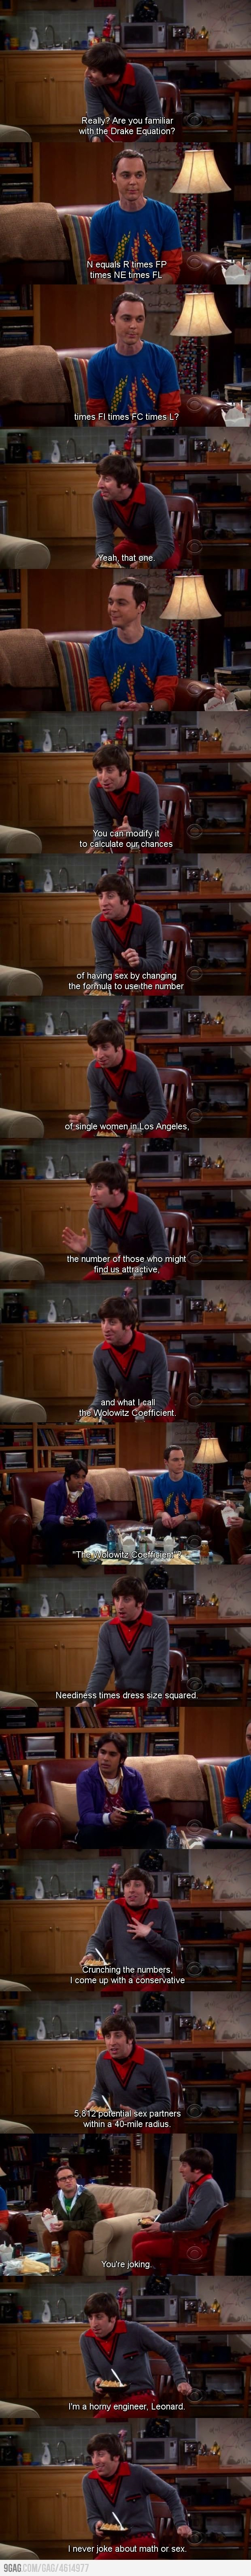 "The Big Bang Theory -  Howard Wolowitz ""Just a horny engineer"""